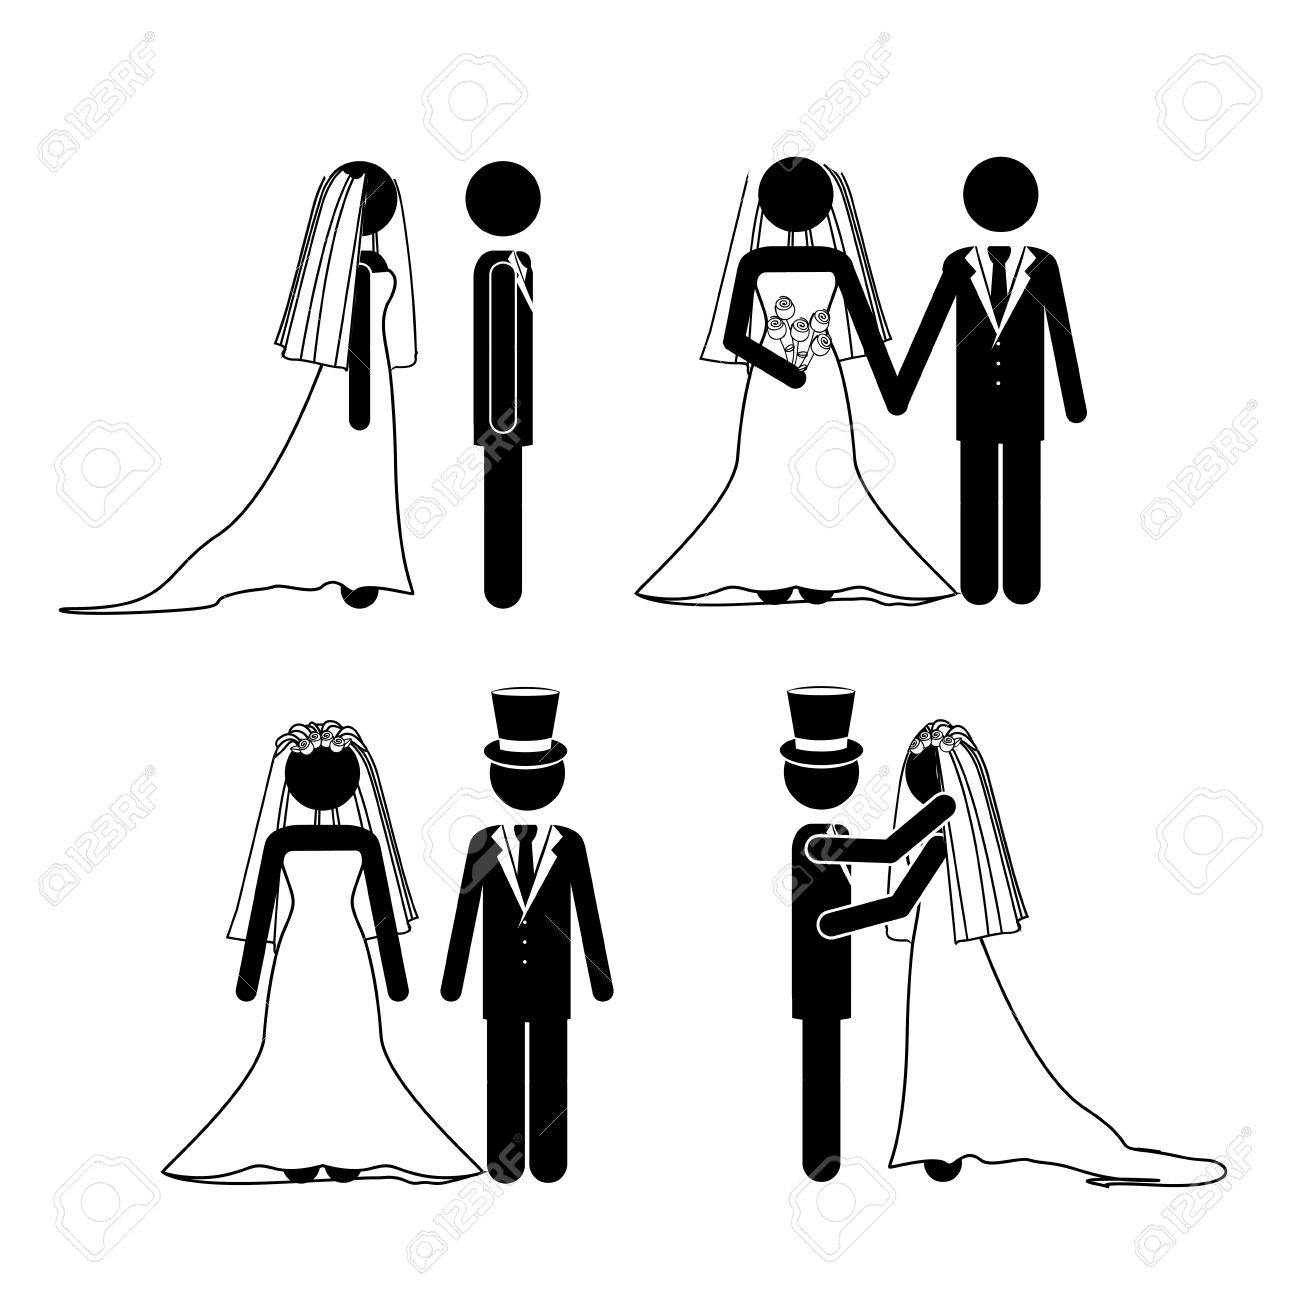 wedding design over white background vector illustration Stock Vector - 21522007